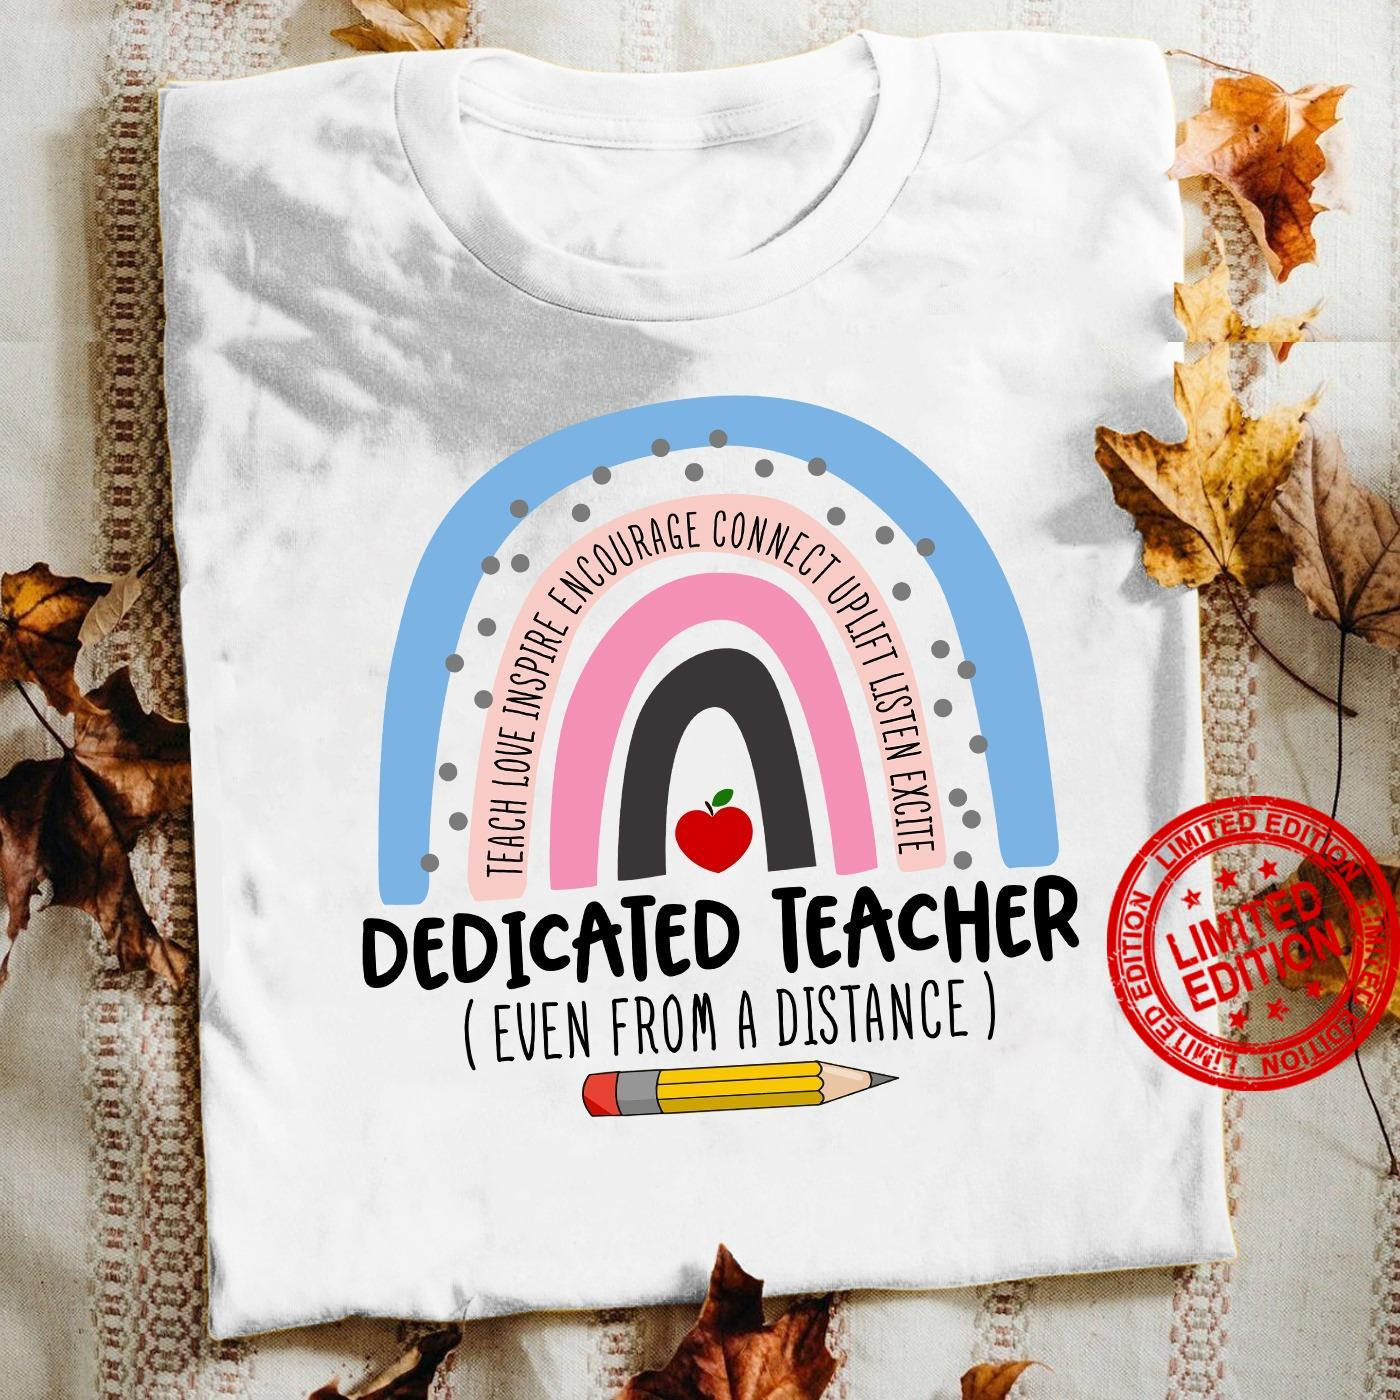 Teach Love Inspire Encourage Connect Uplift Listen Excite Dedicated Teacher Even From A Distance Shirt